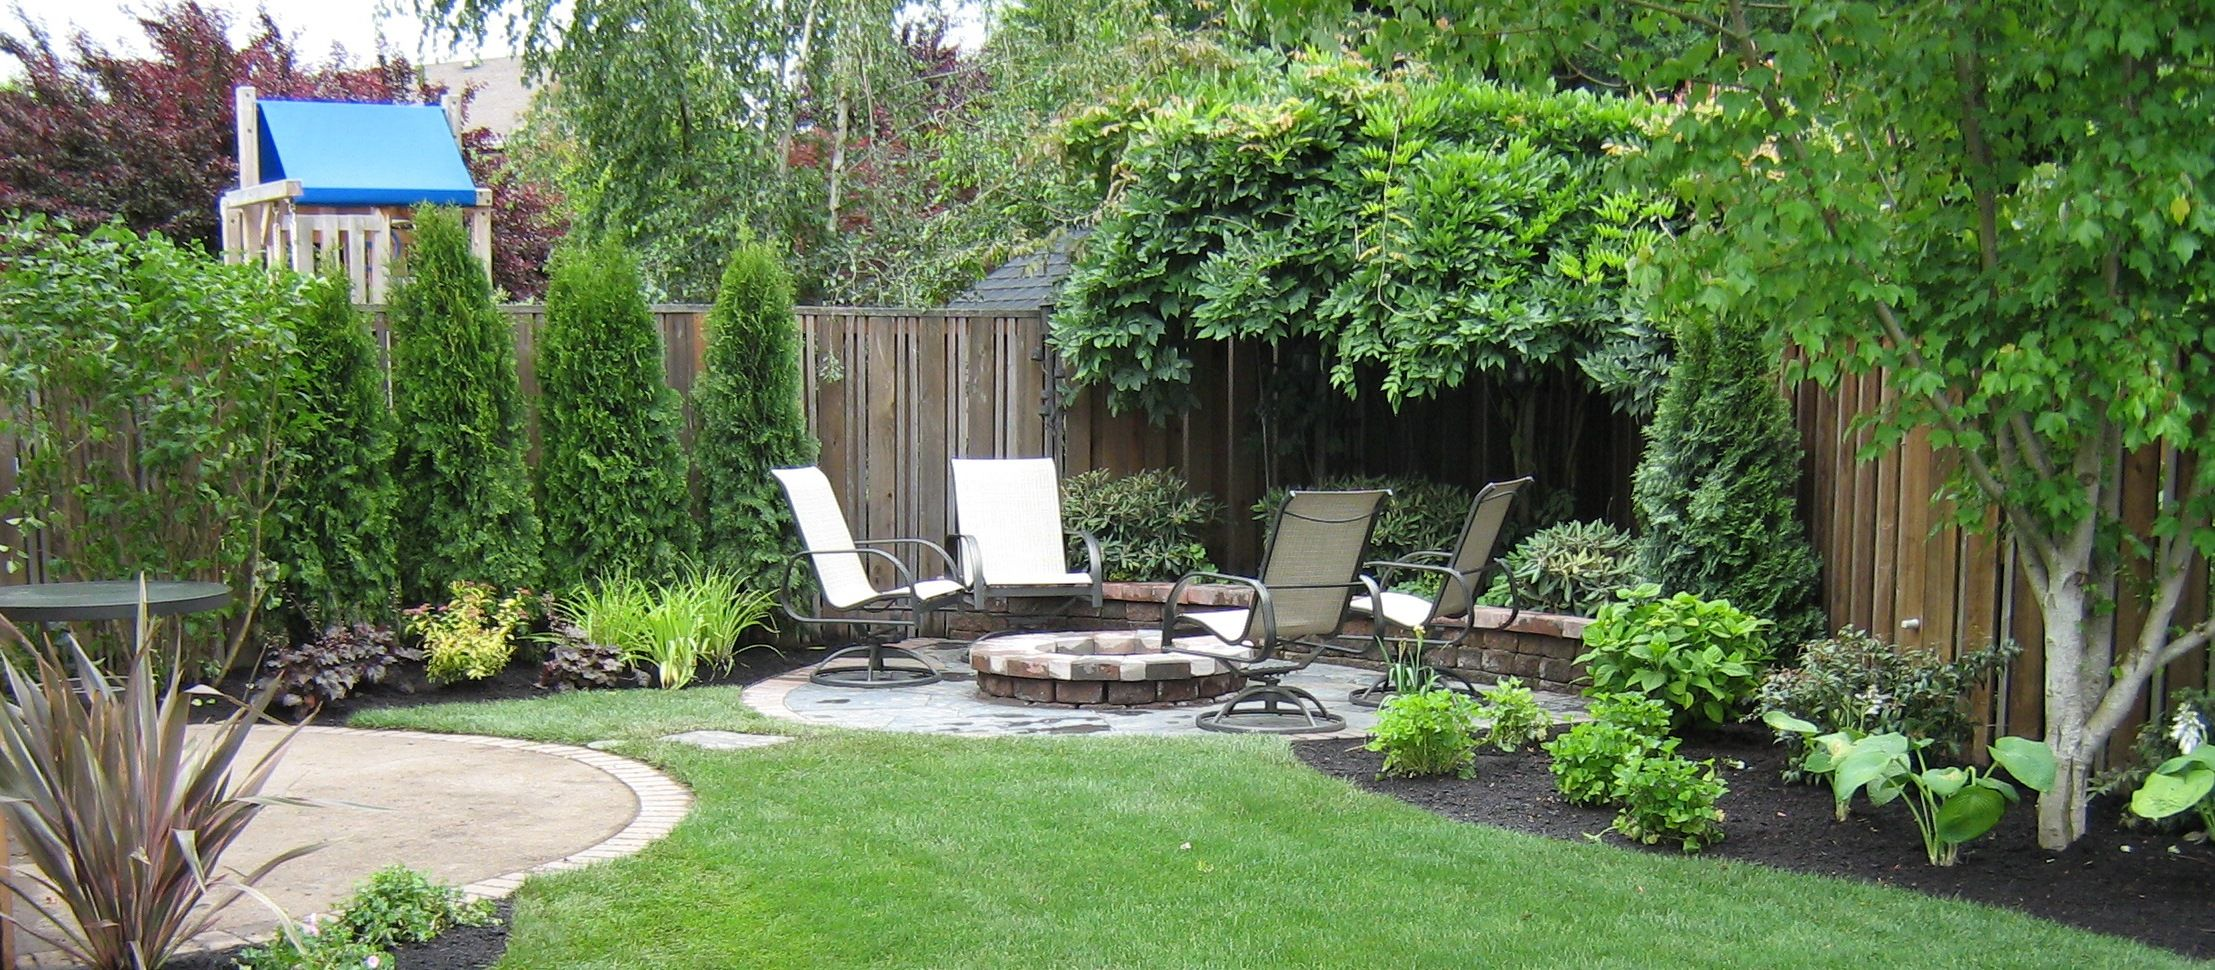 Small backyard landscaping ideas photos garden design for Back garden designs uk